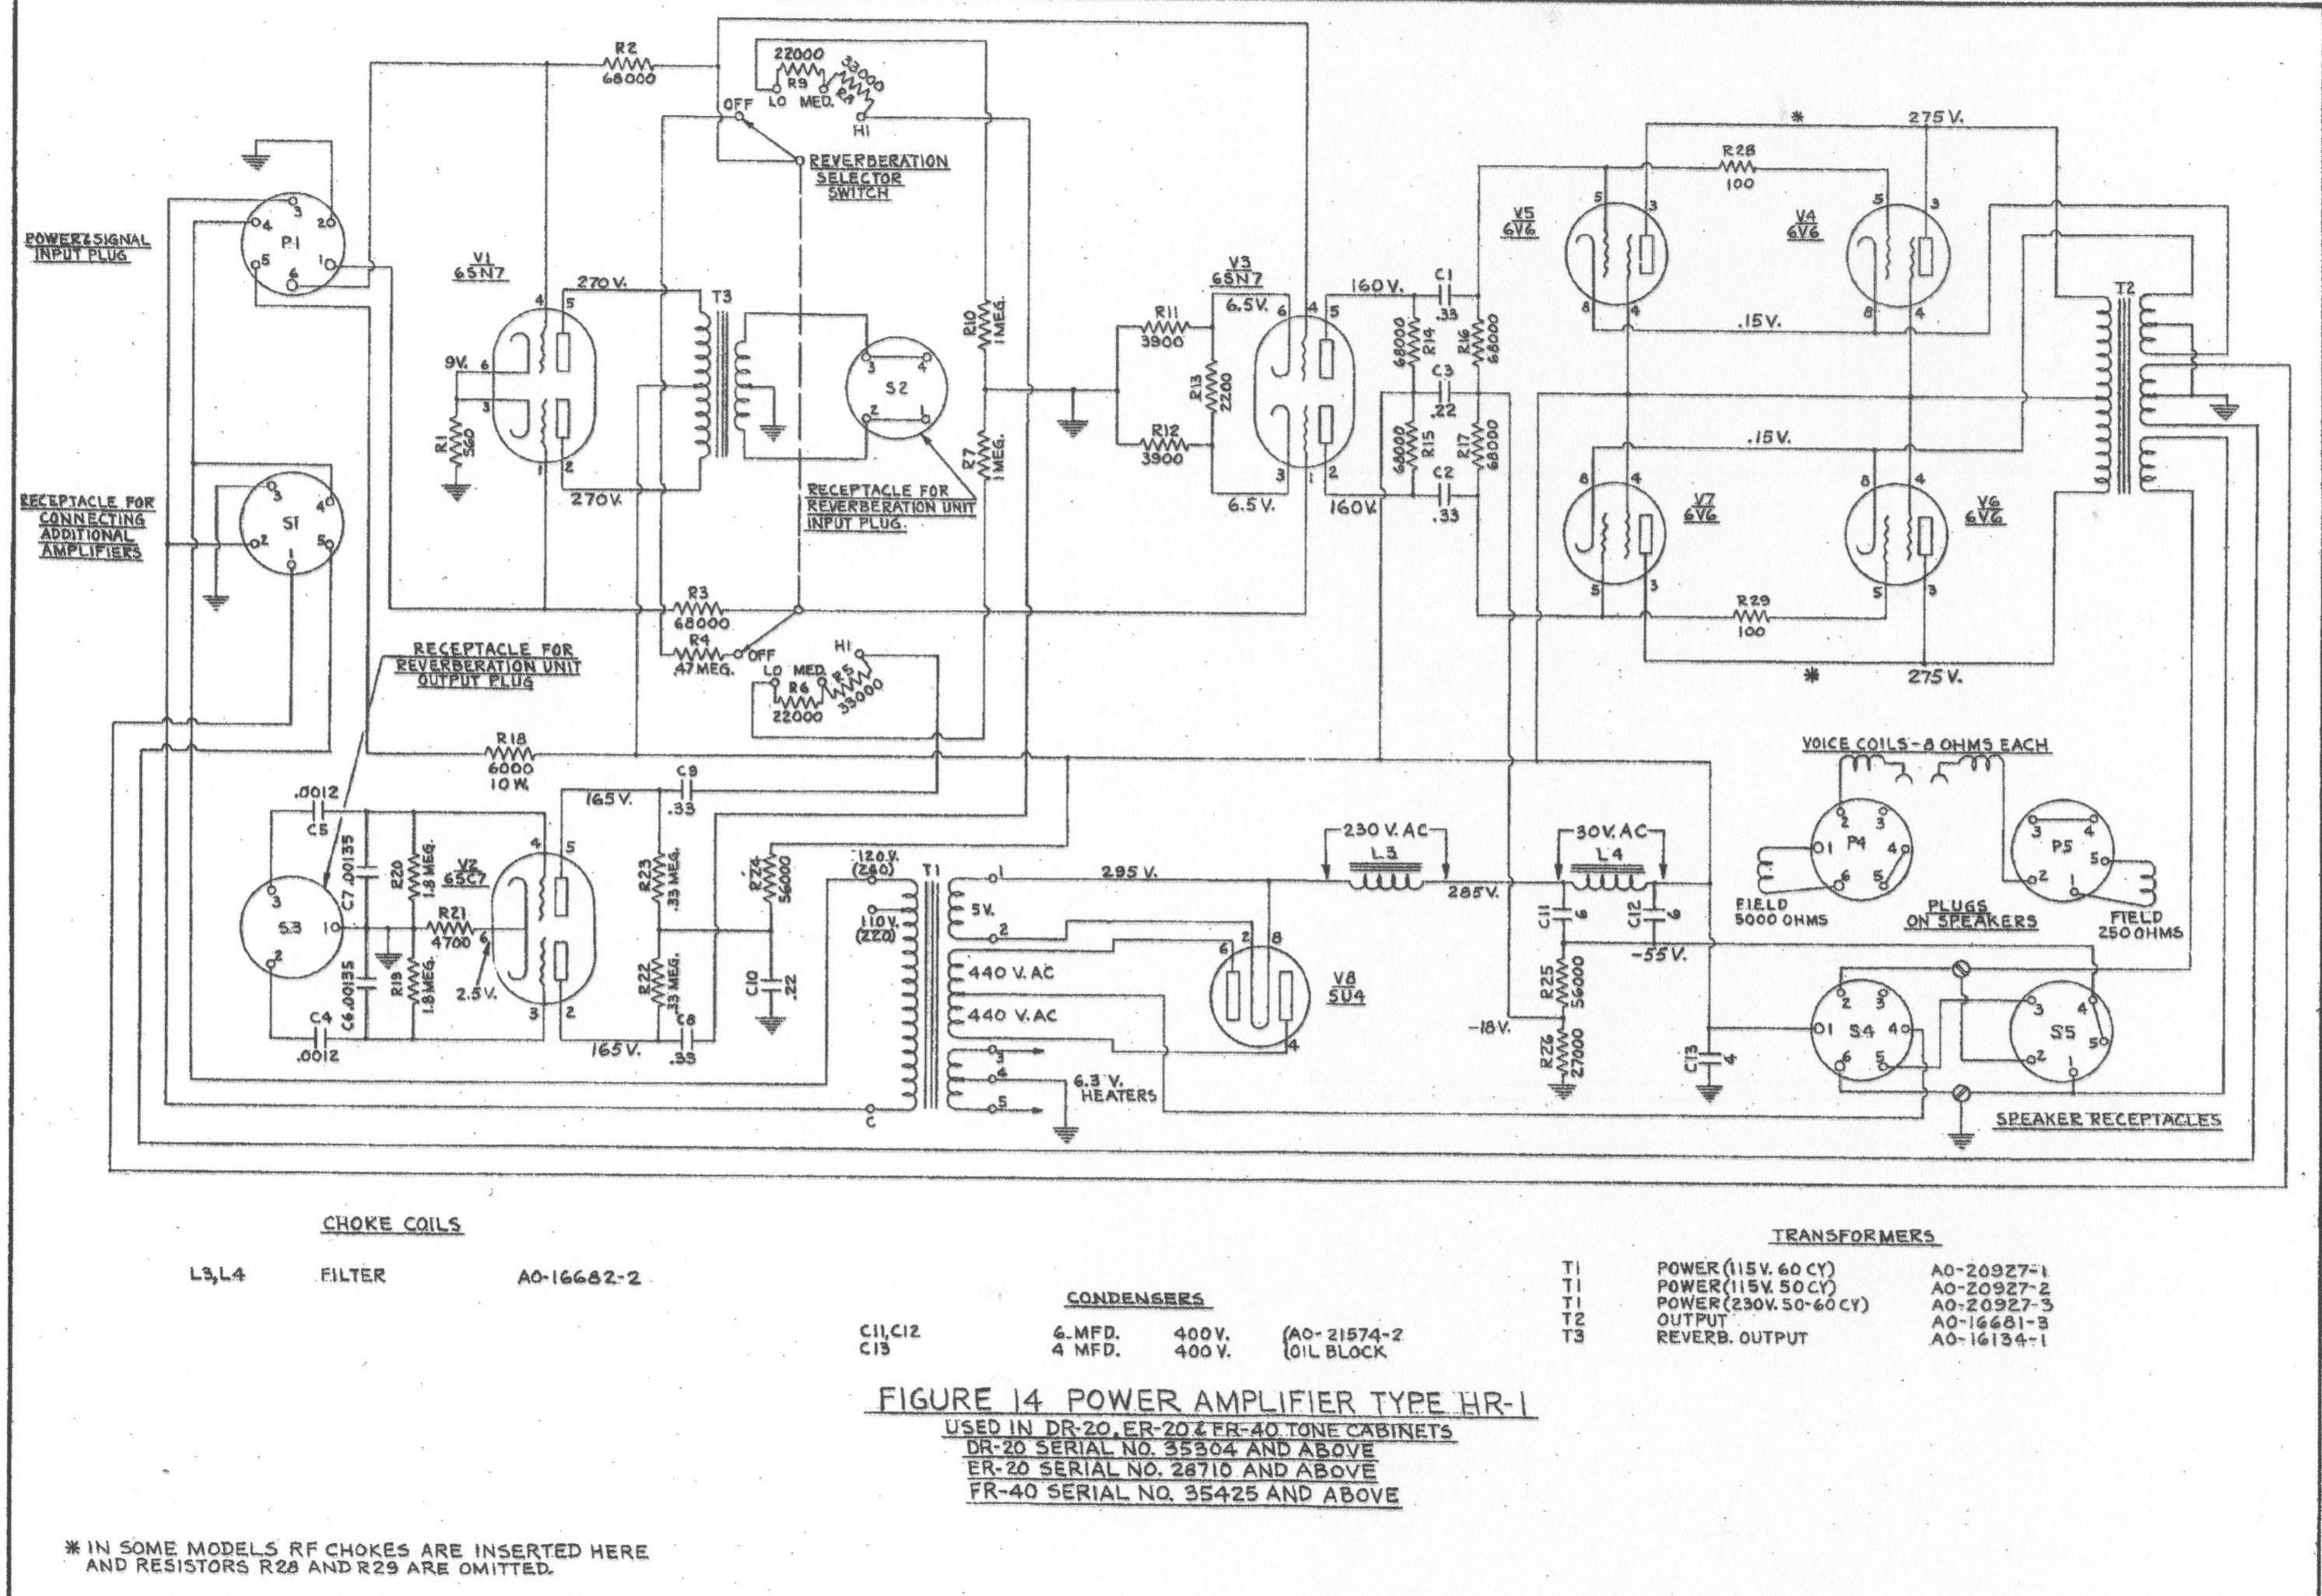 Hammond Schematics Here And Elsewhere On The Net Power Car Amplifier Wiring Diagram Pdf Tone Cabinets